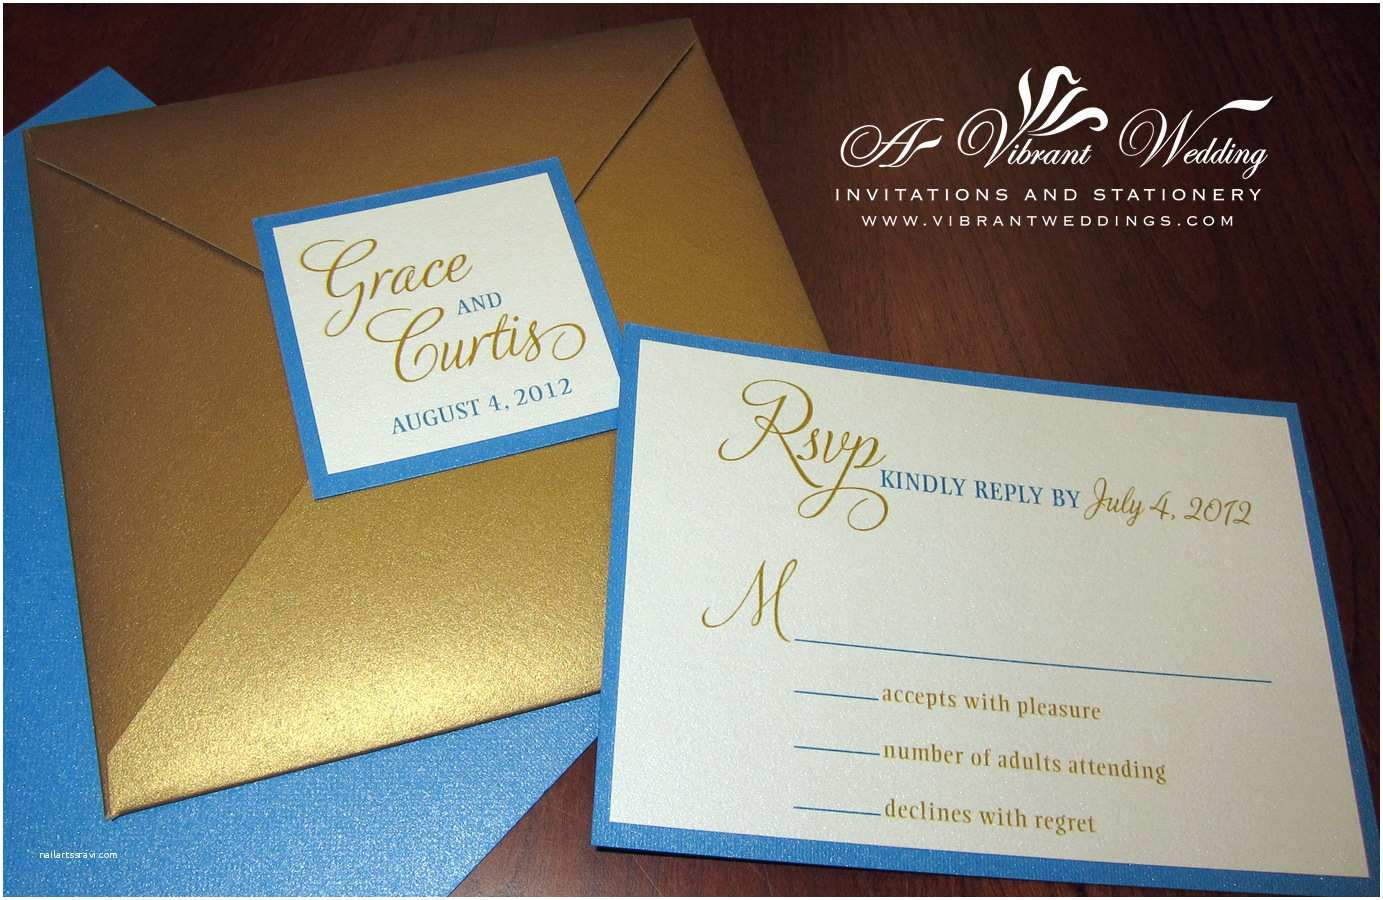 Blue and Gold Wedding Invitations Royal Blue Wedding Invitation – A Vibrant Wedding